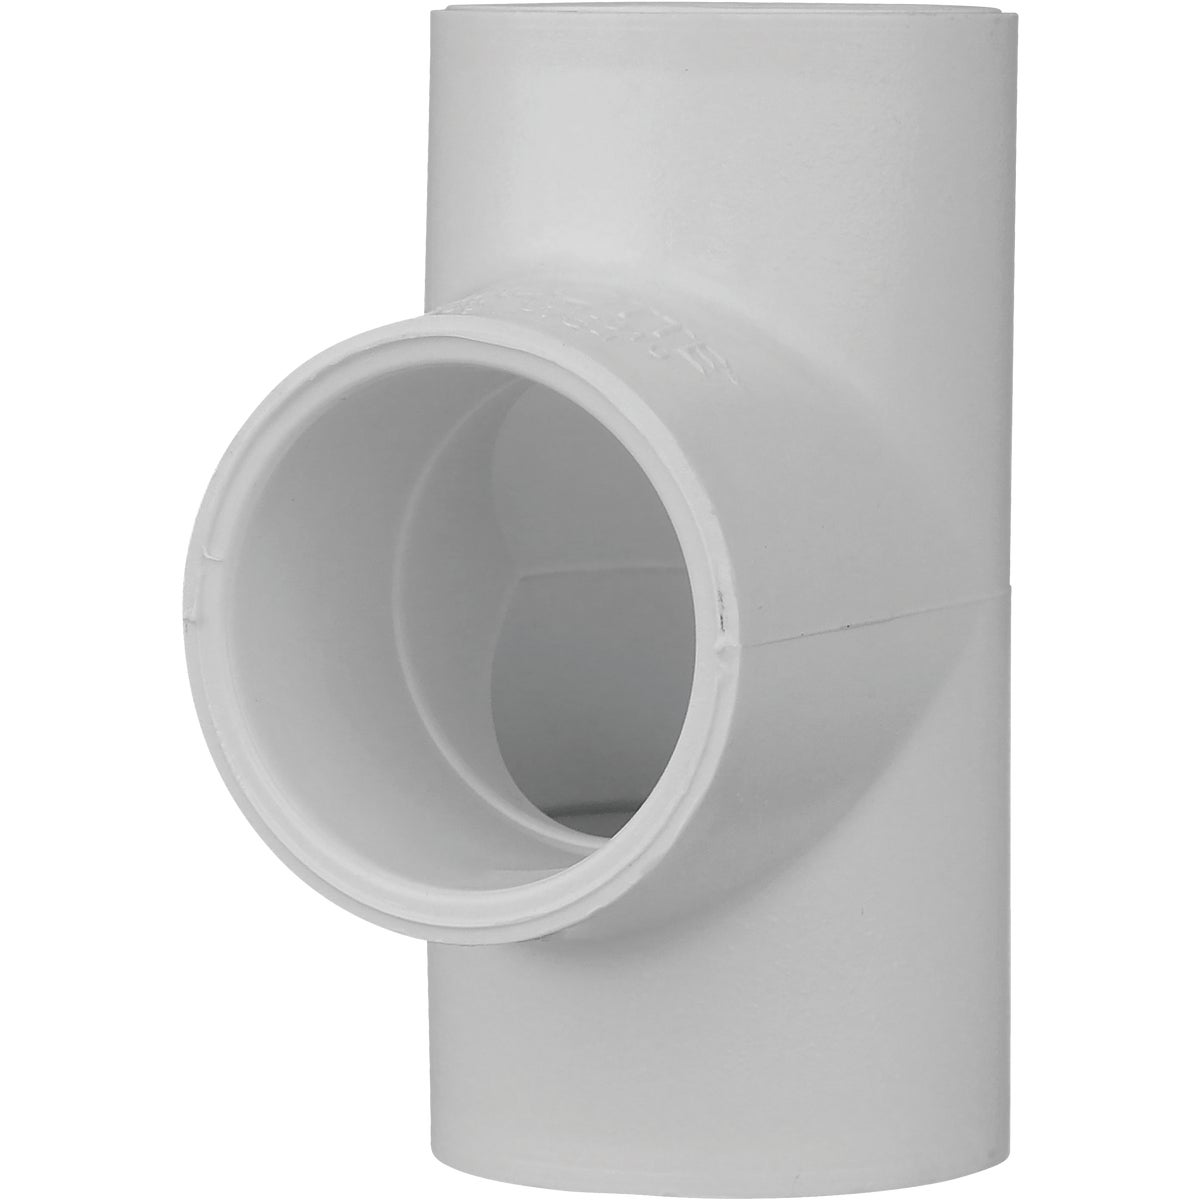 "1"" SCH40 PVC TEE - 31410 by Genova Inc"